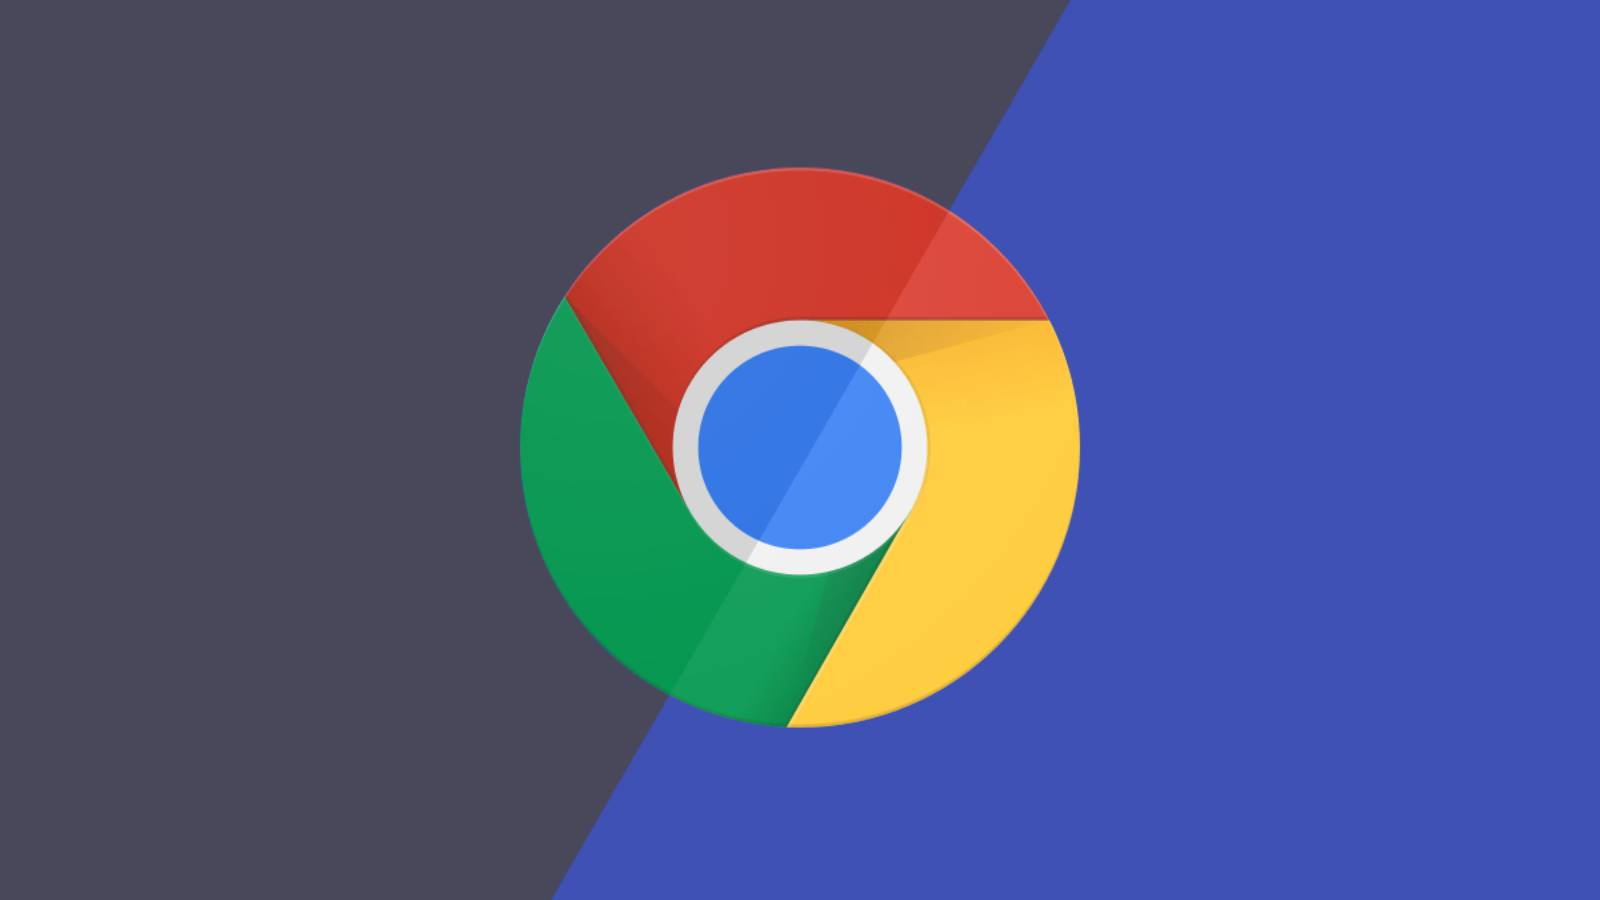 Version 76 of Google Chrome brings TWO VERY BIG changes